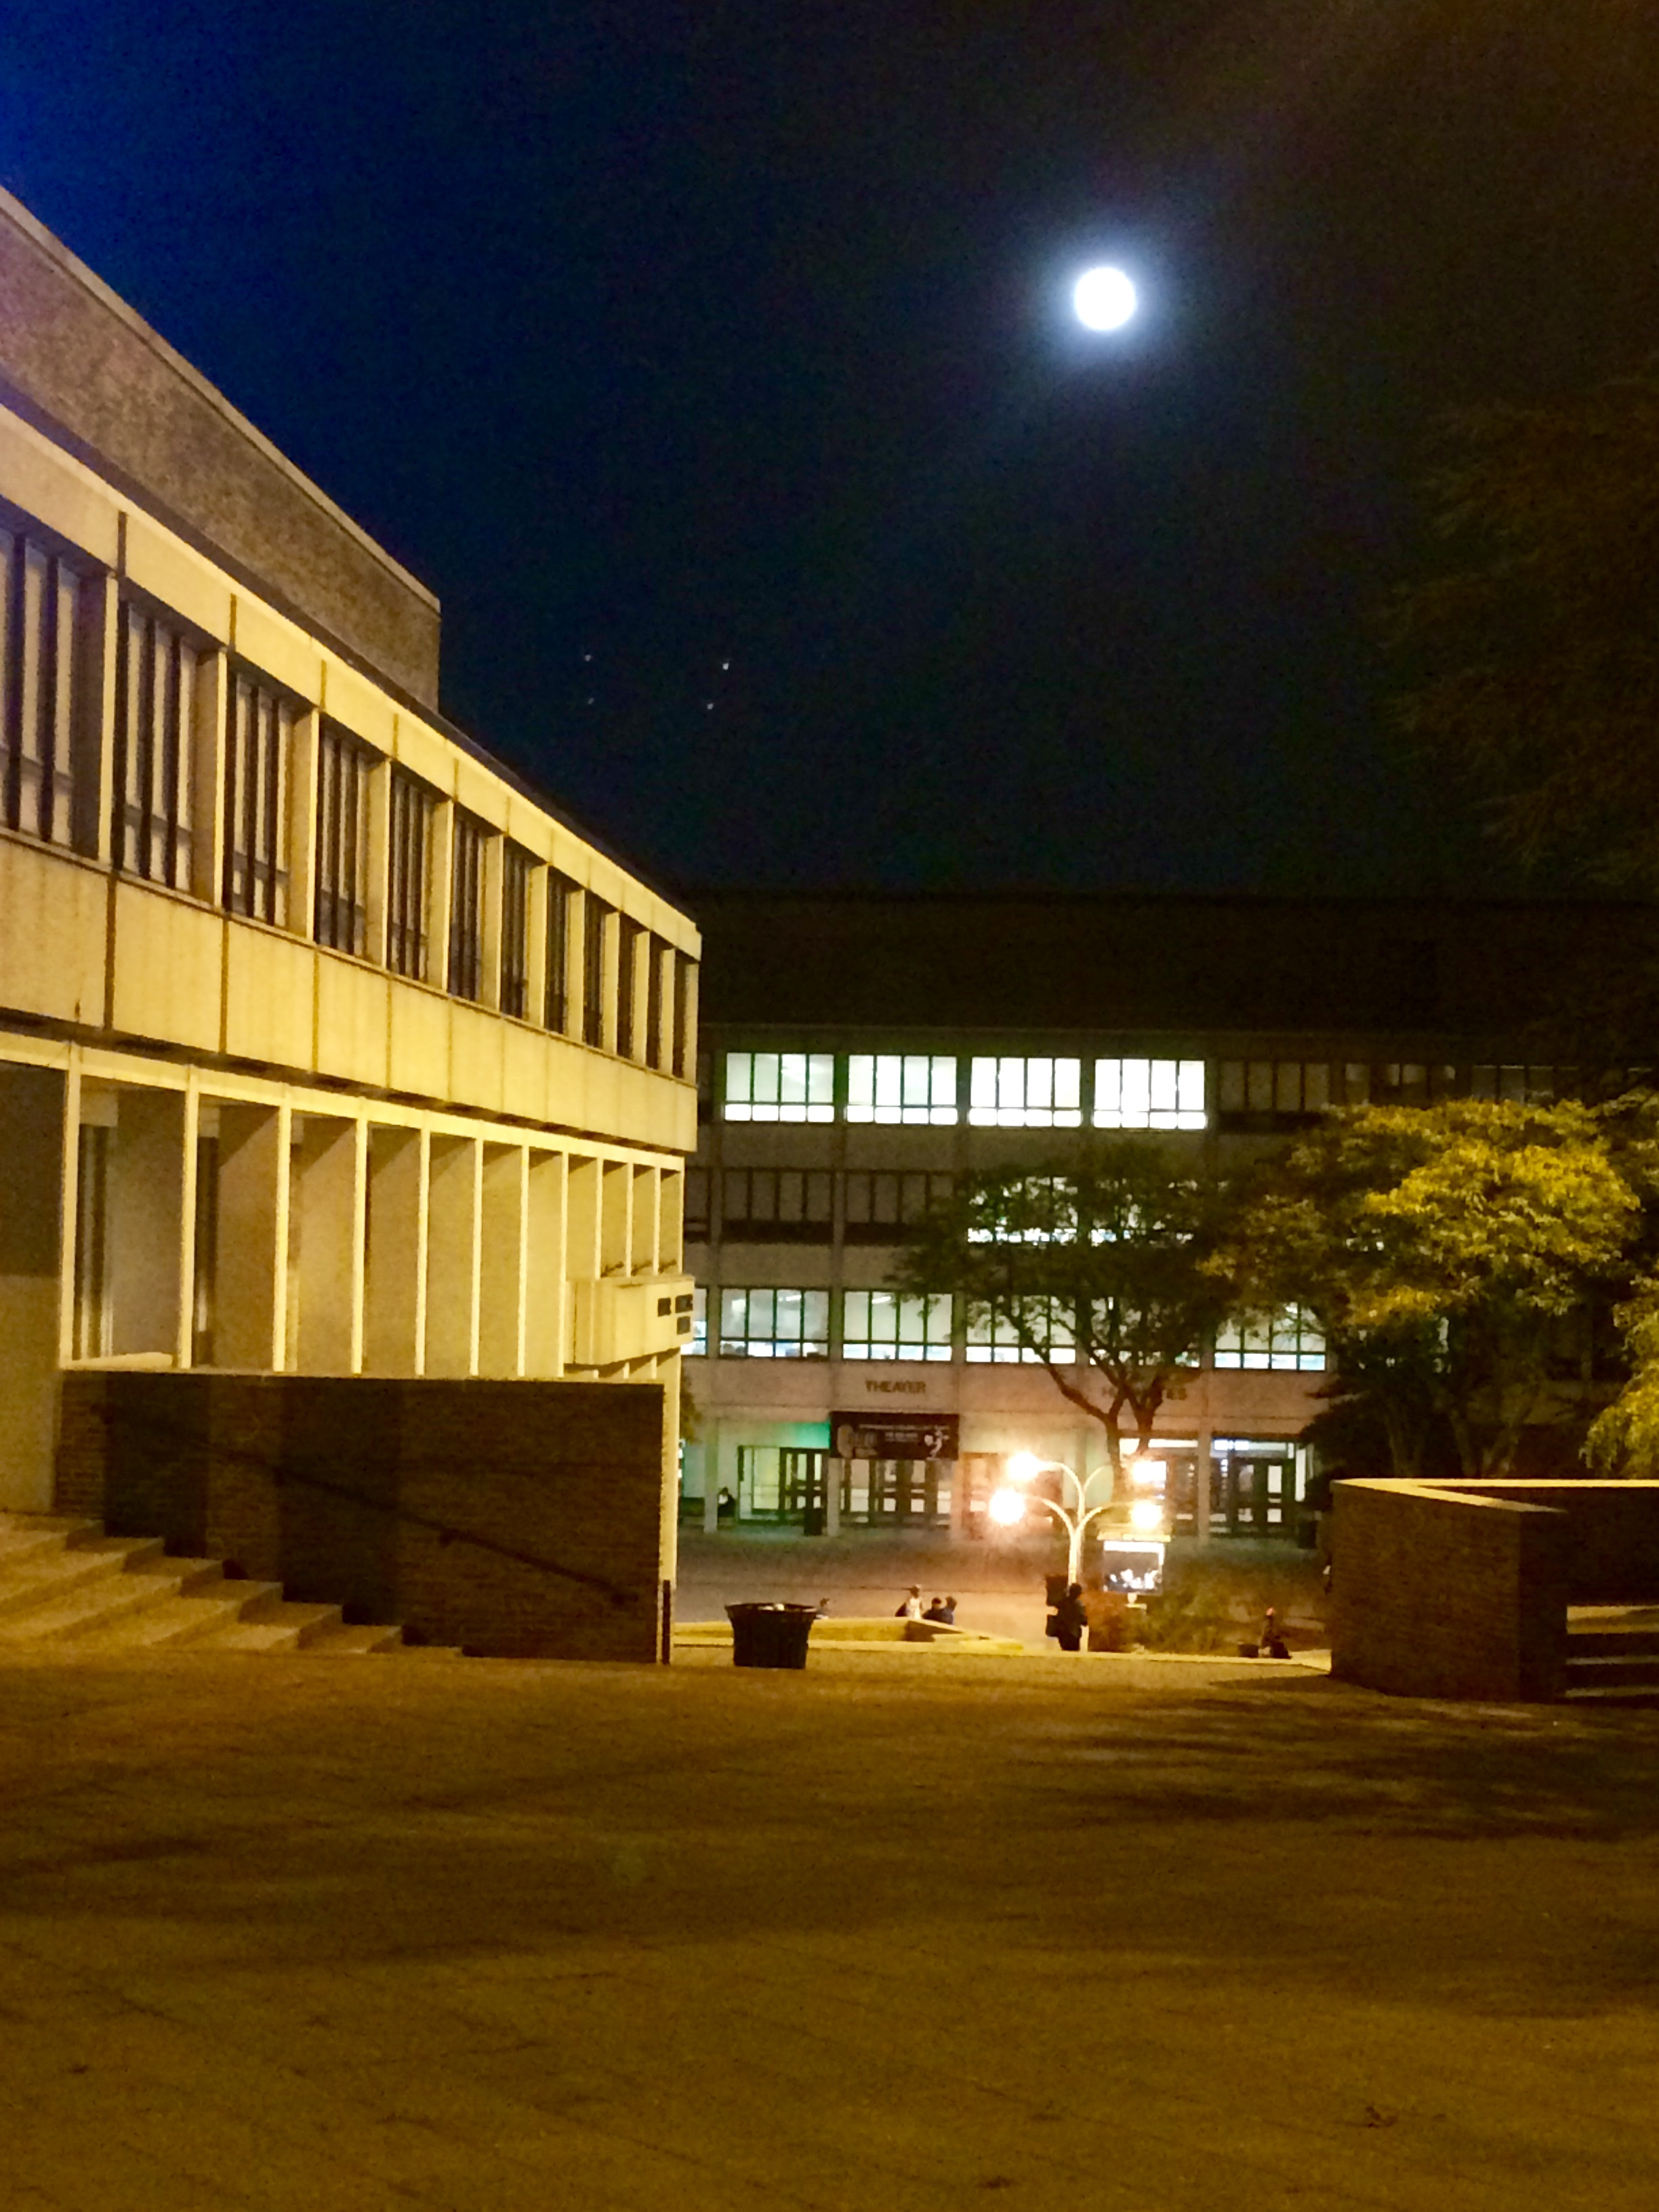 winning photo of QCC campus at night-time